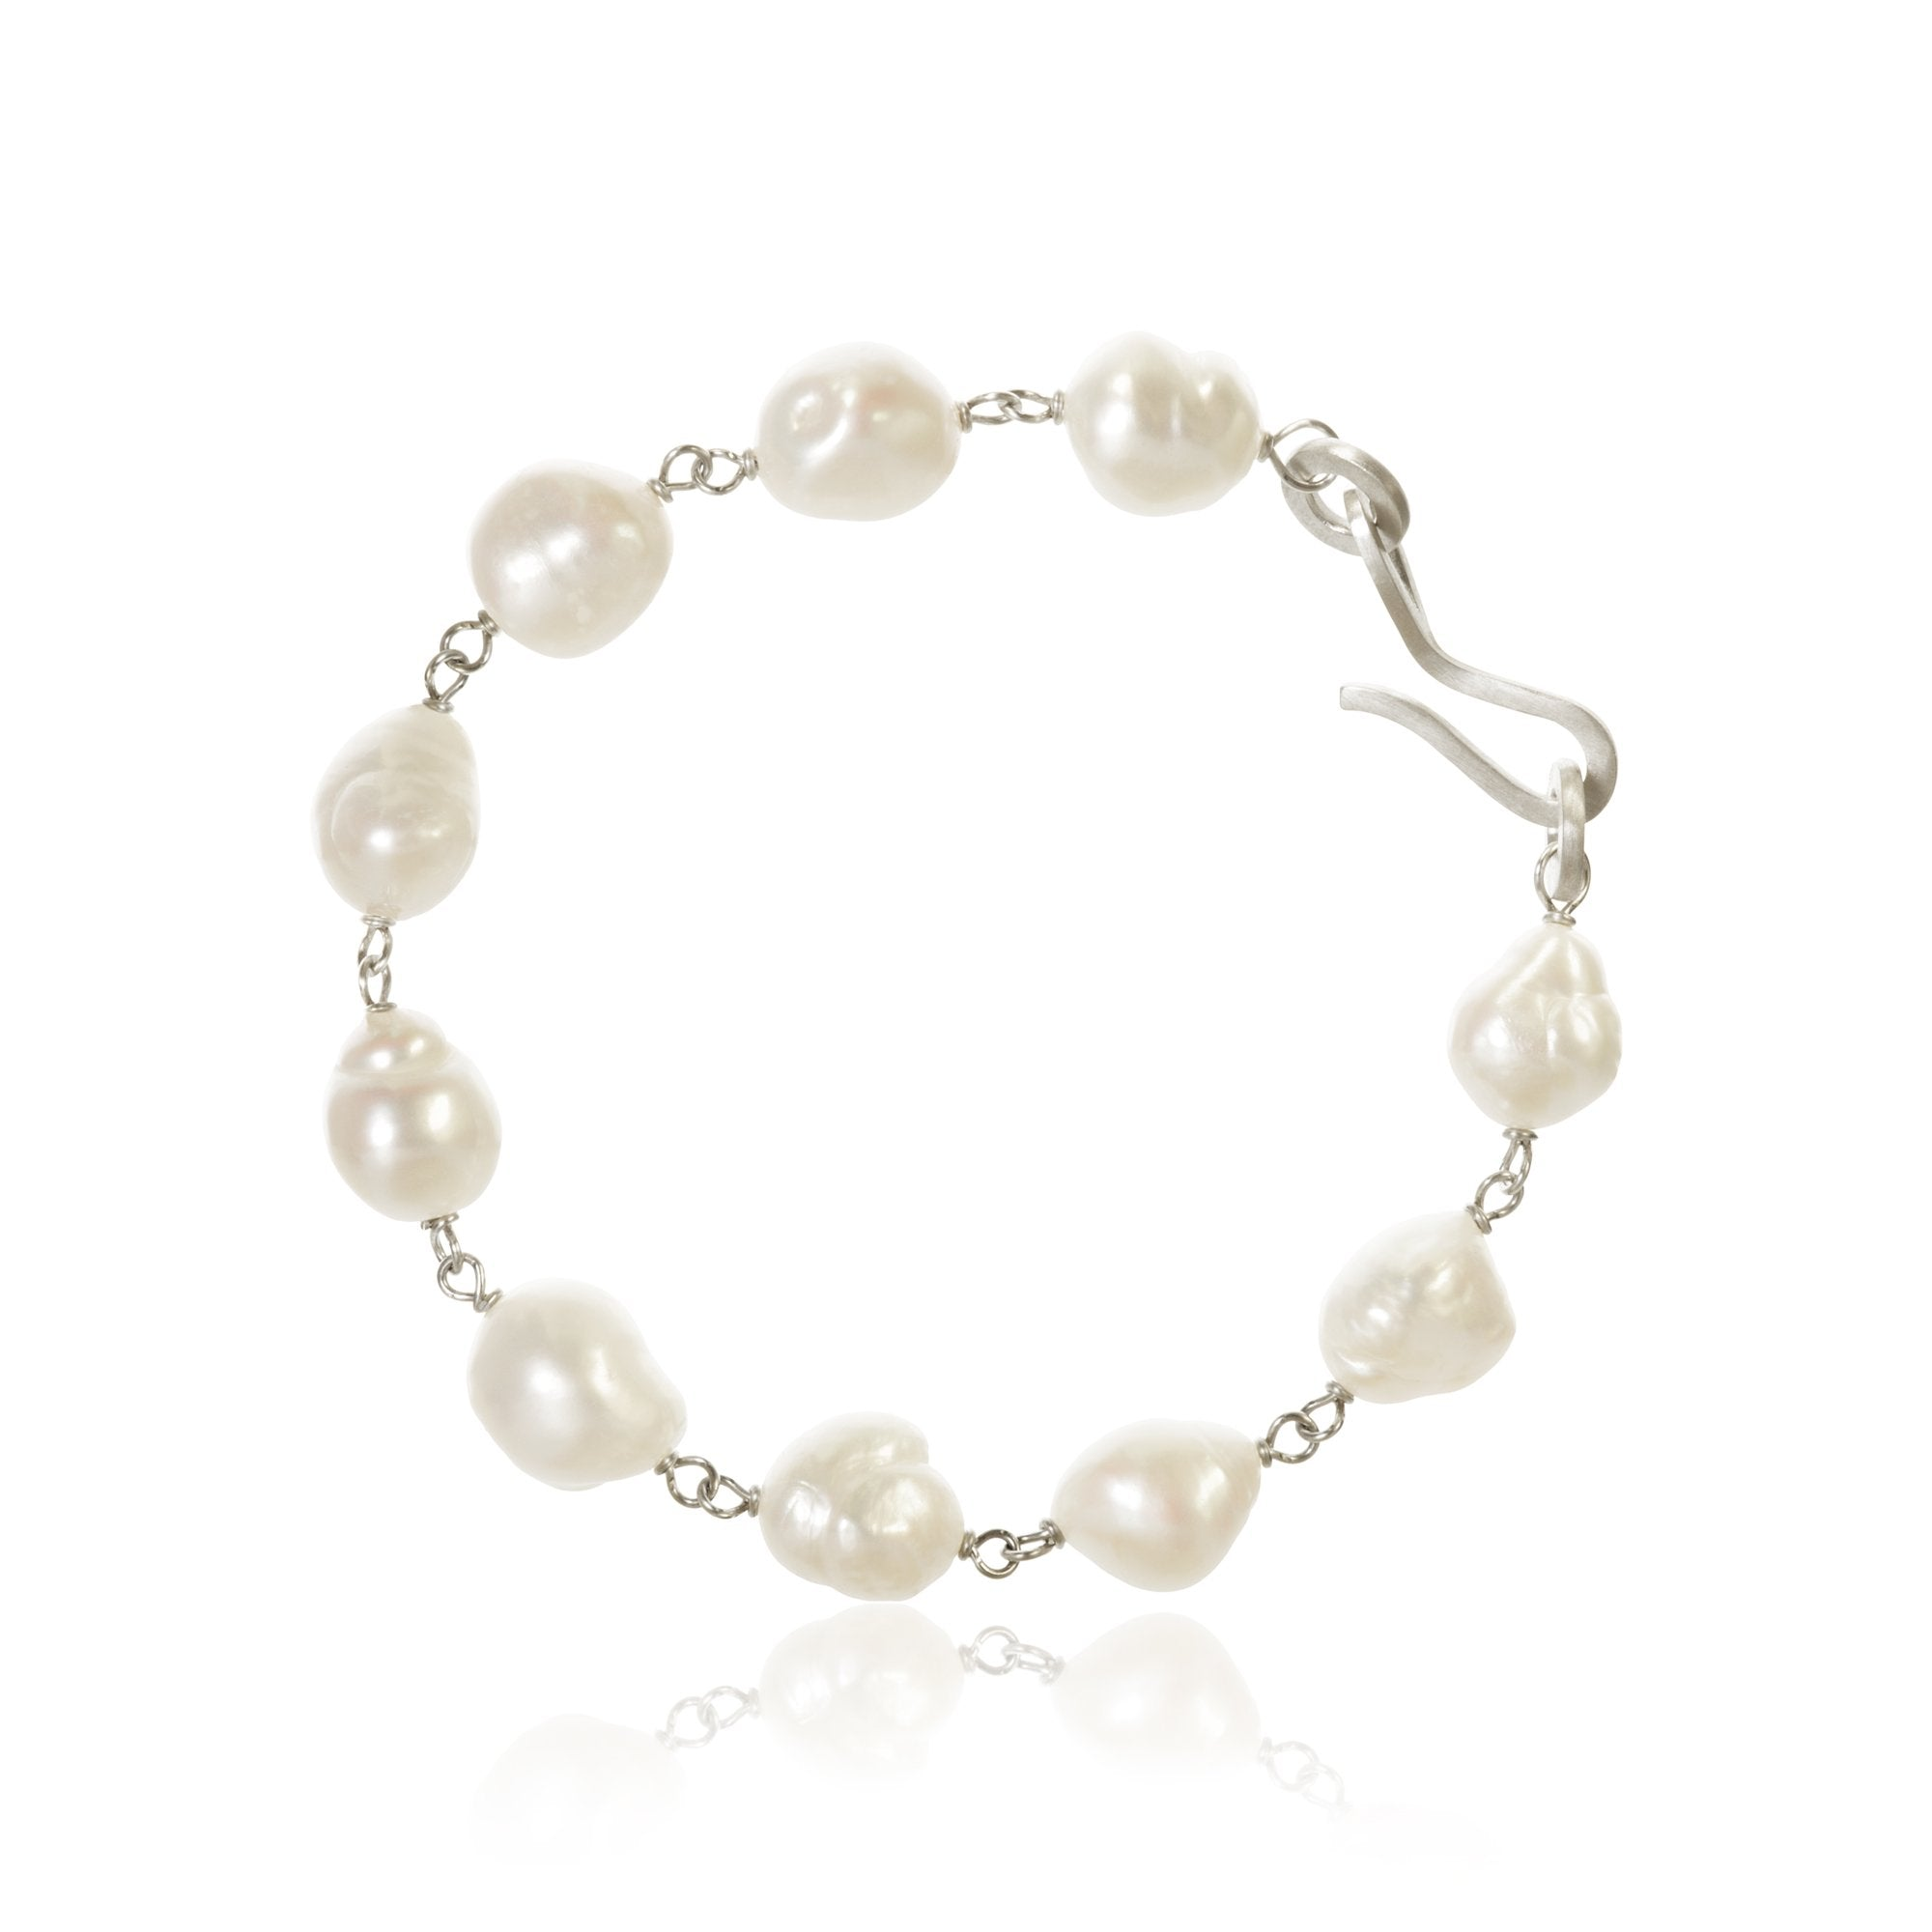 Grand Ocean pearl bracelet. With baroque freshwater pearls.